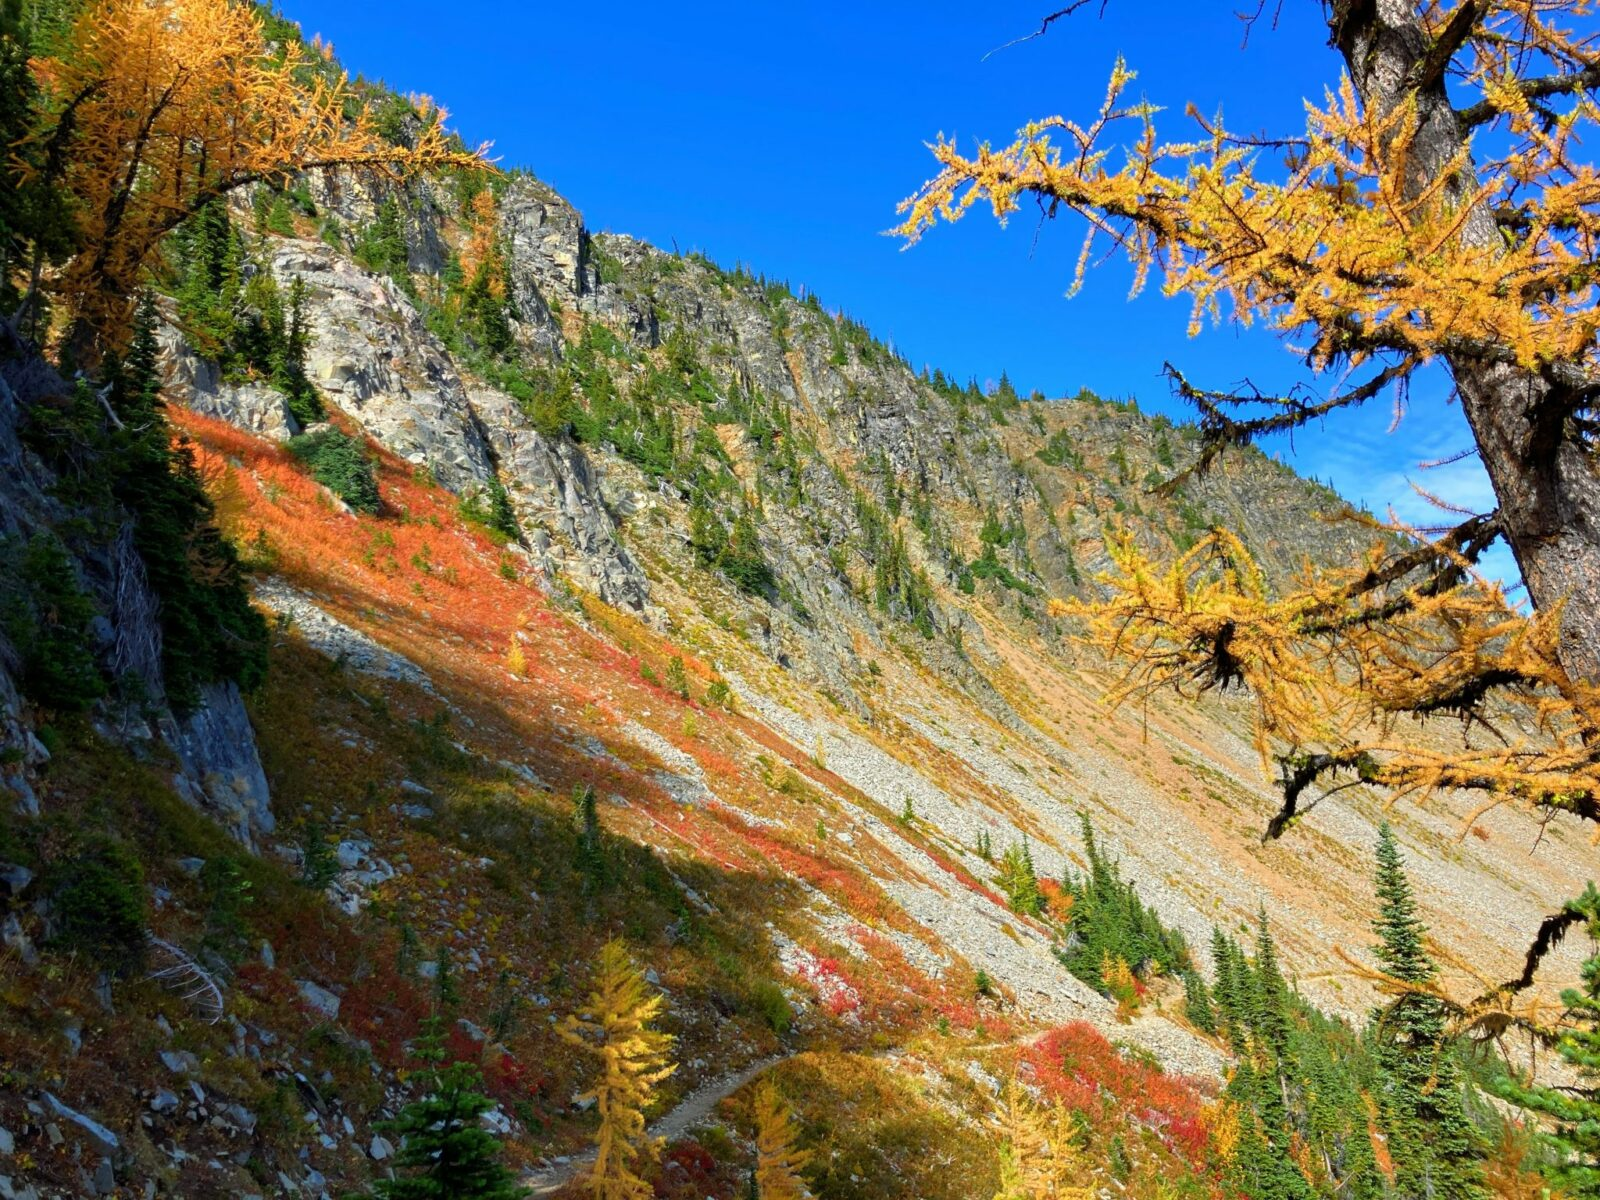 A mountainside with evergreen trees, red berry bushes and golden larches along the Pacific Crest trail on the way to Grasshopper pass